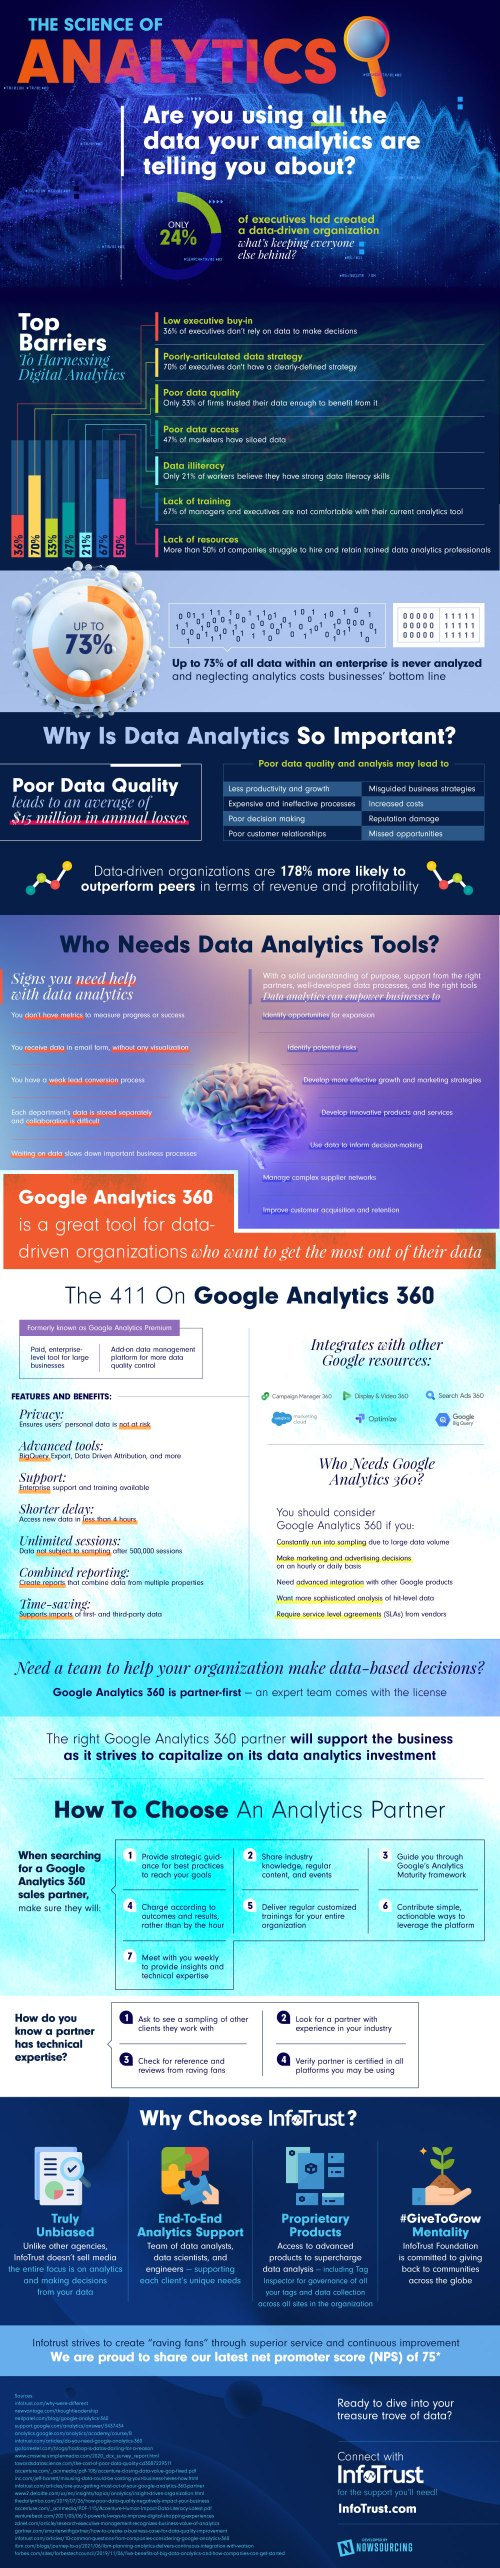 The Science of Analytics